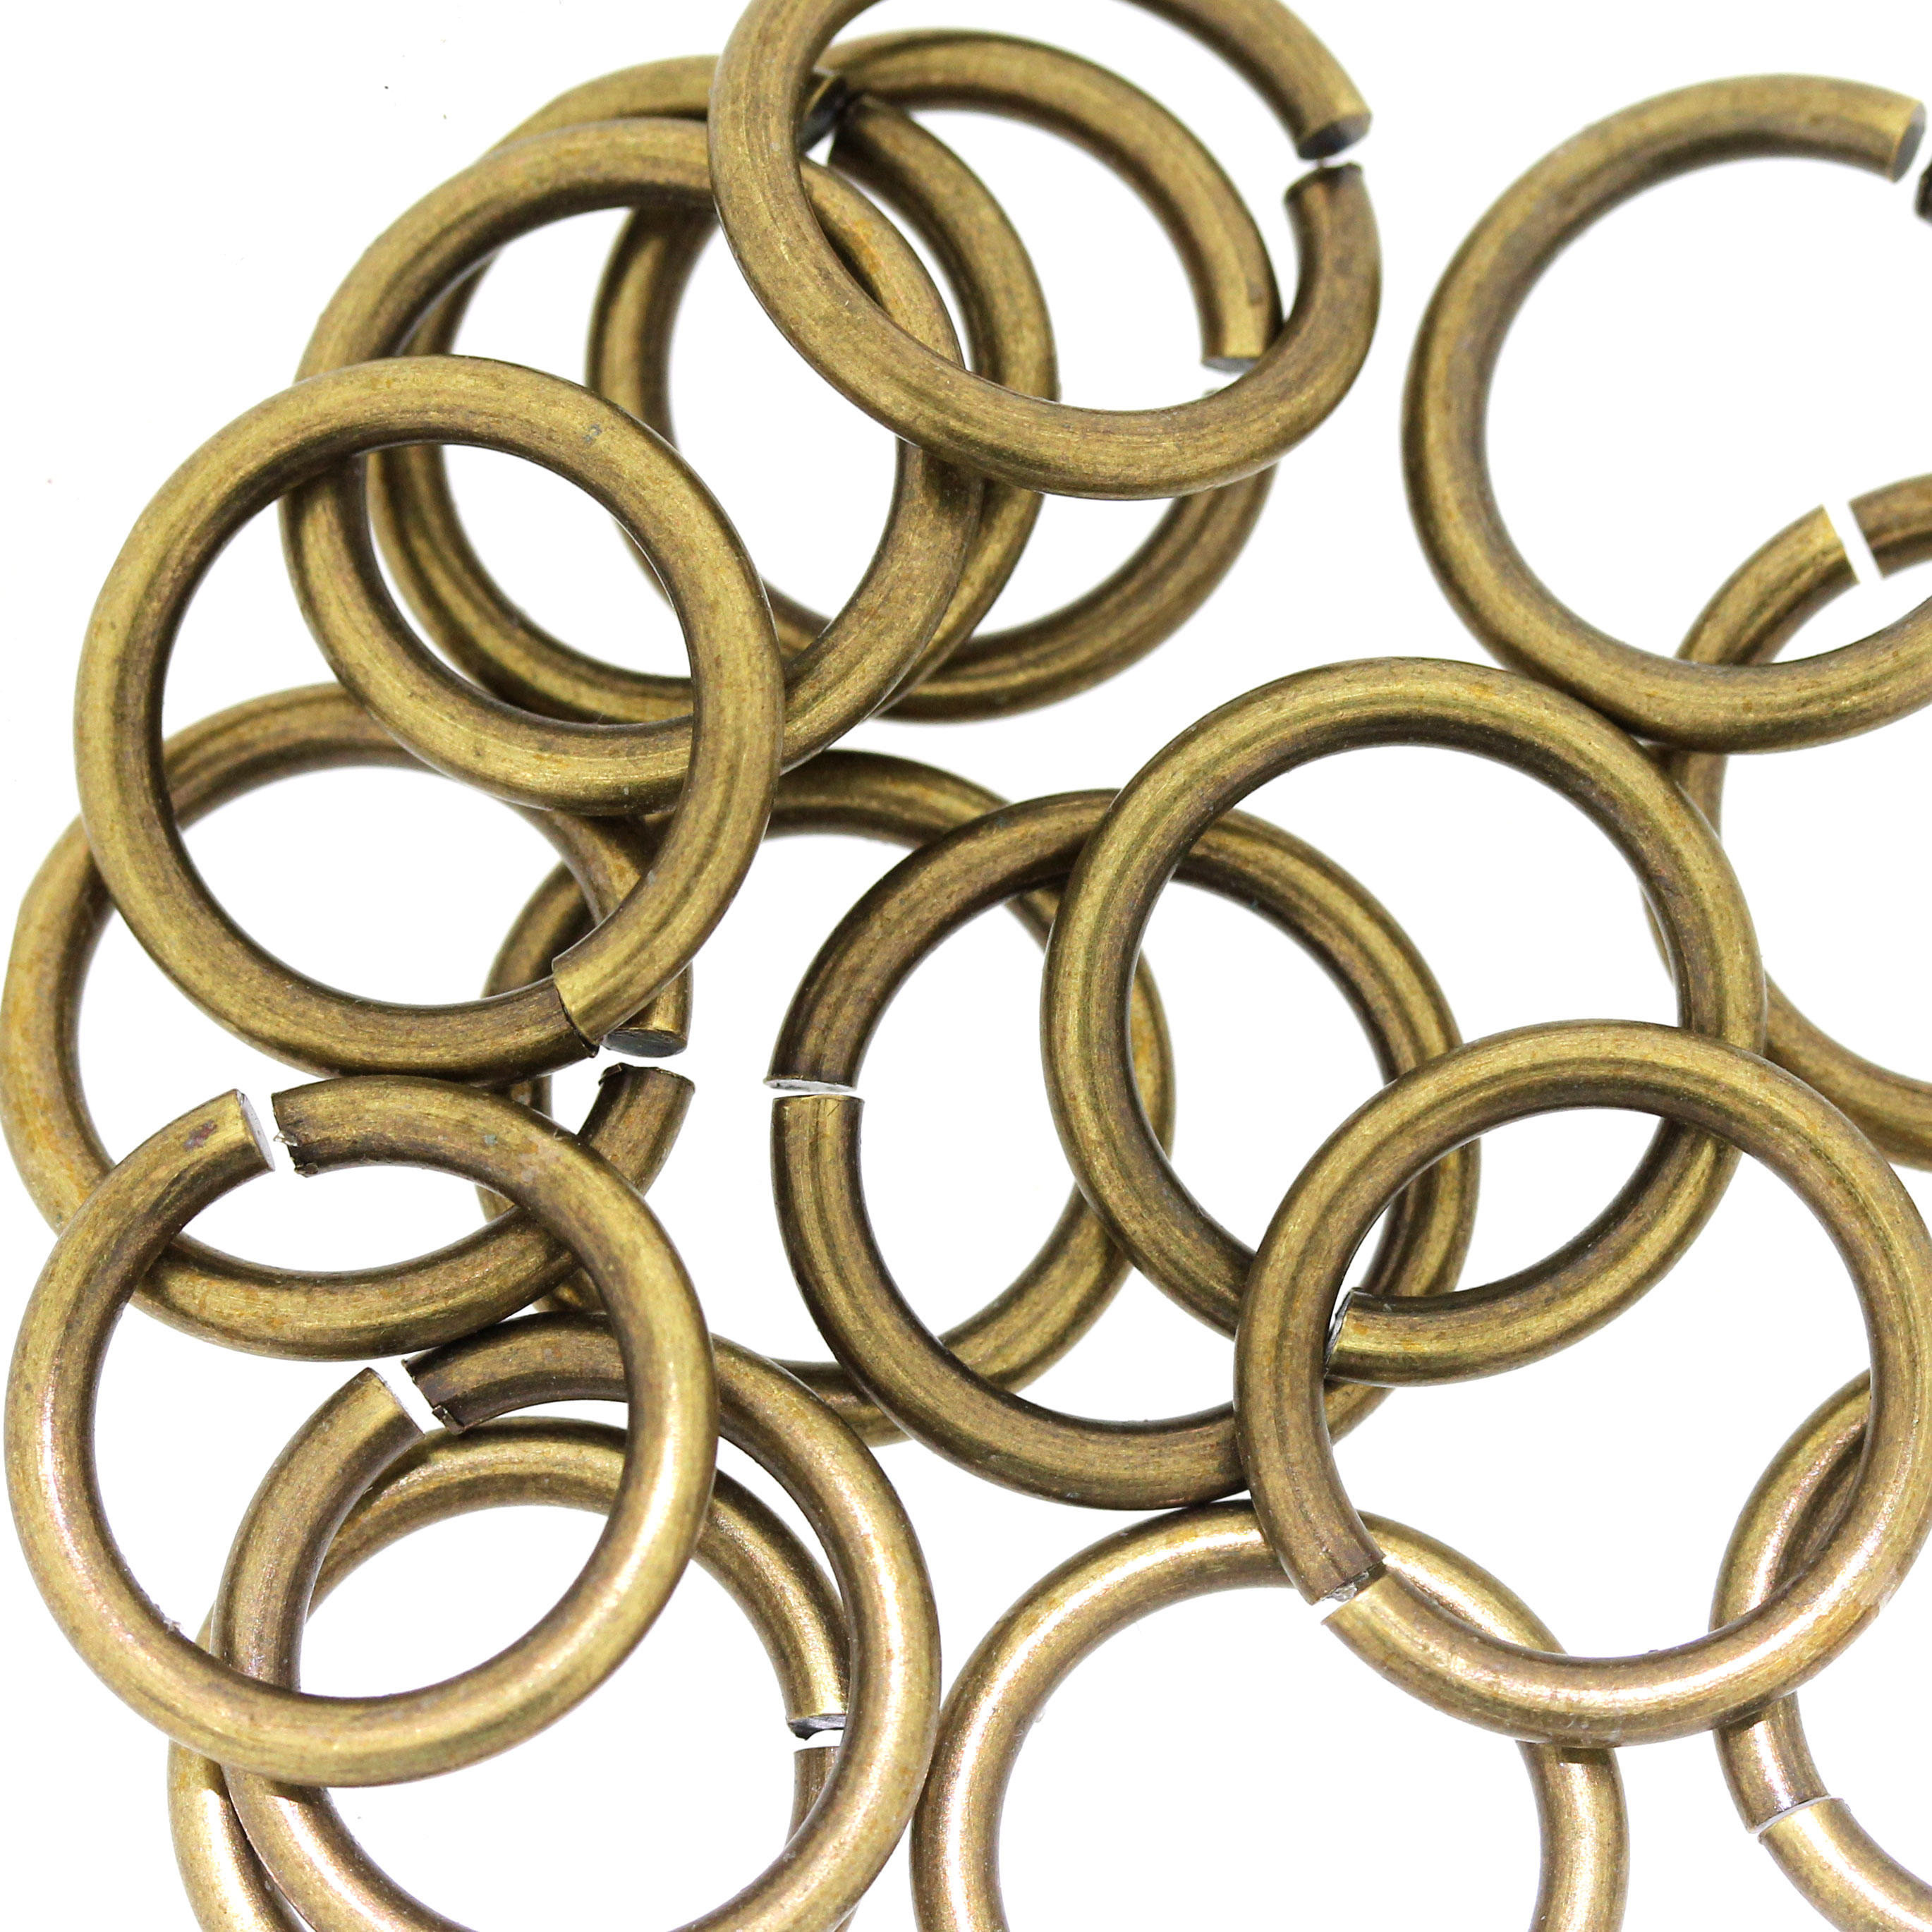 Antique Gold 14mm Thick Jump-Ring